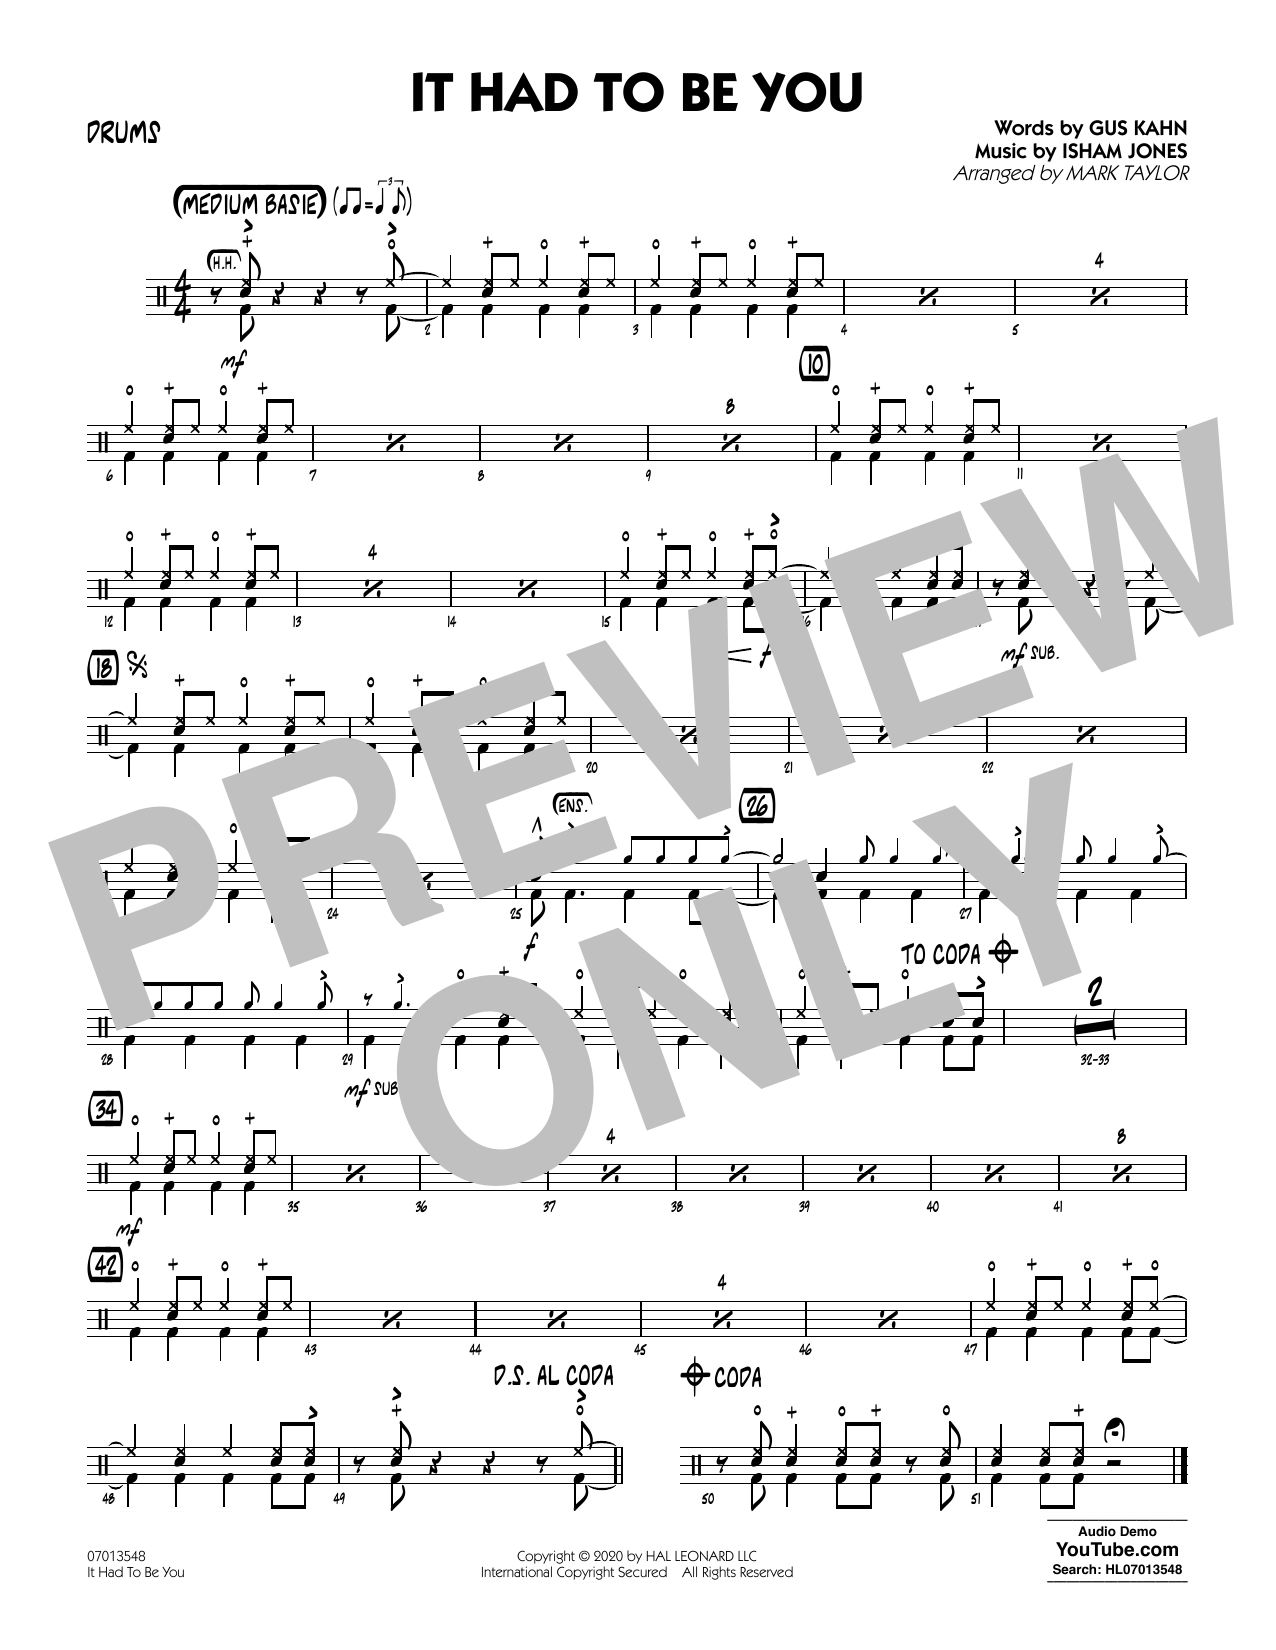 It Had to Be You (arr. Mark Taylor) - Drums Sheet Music